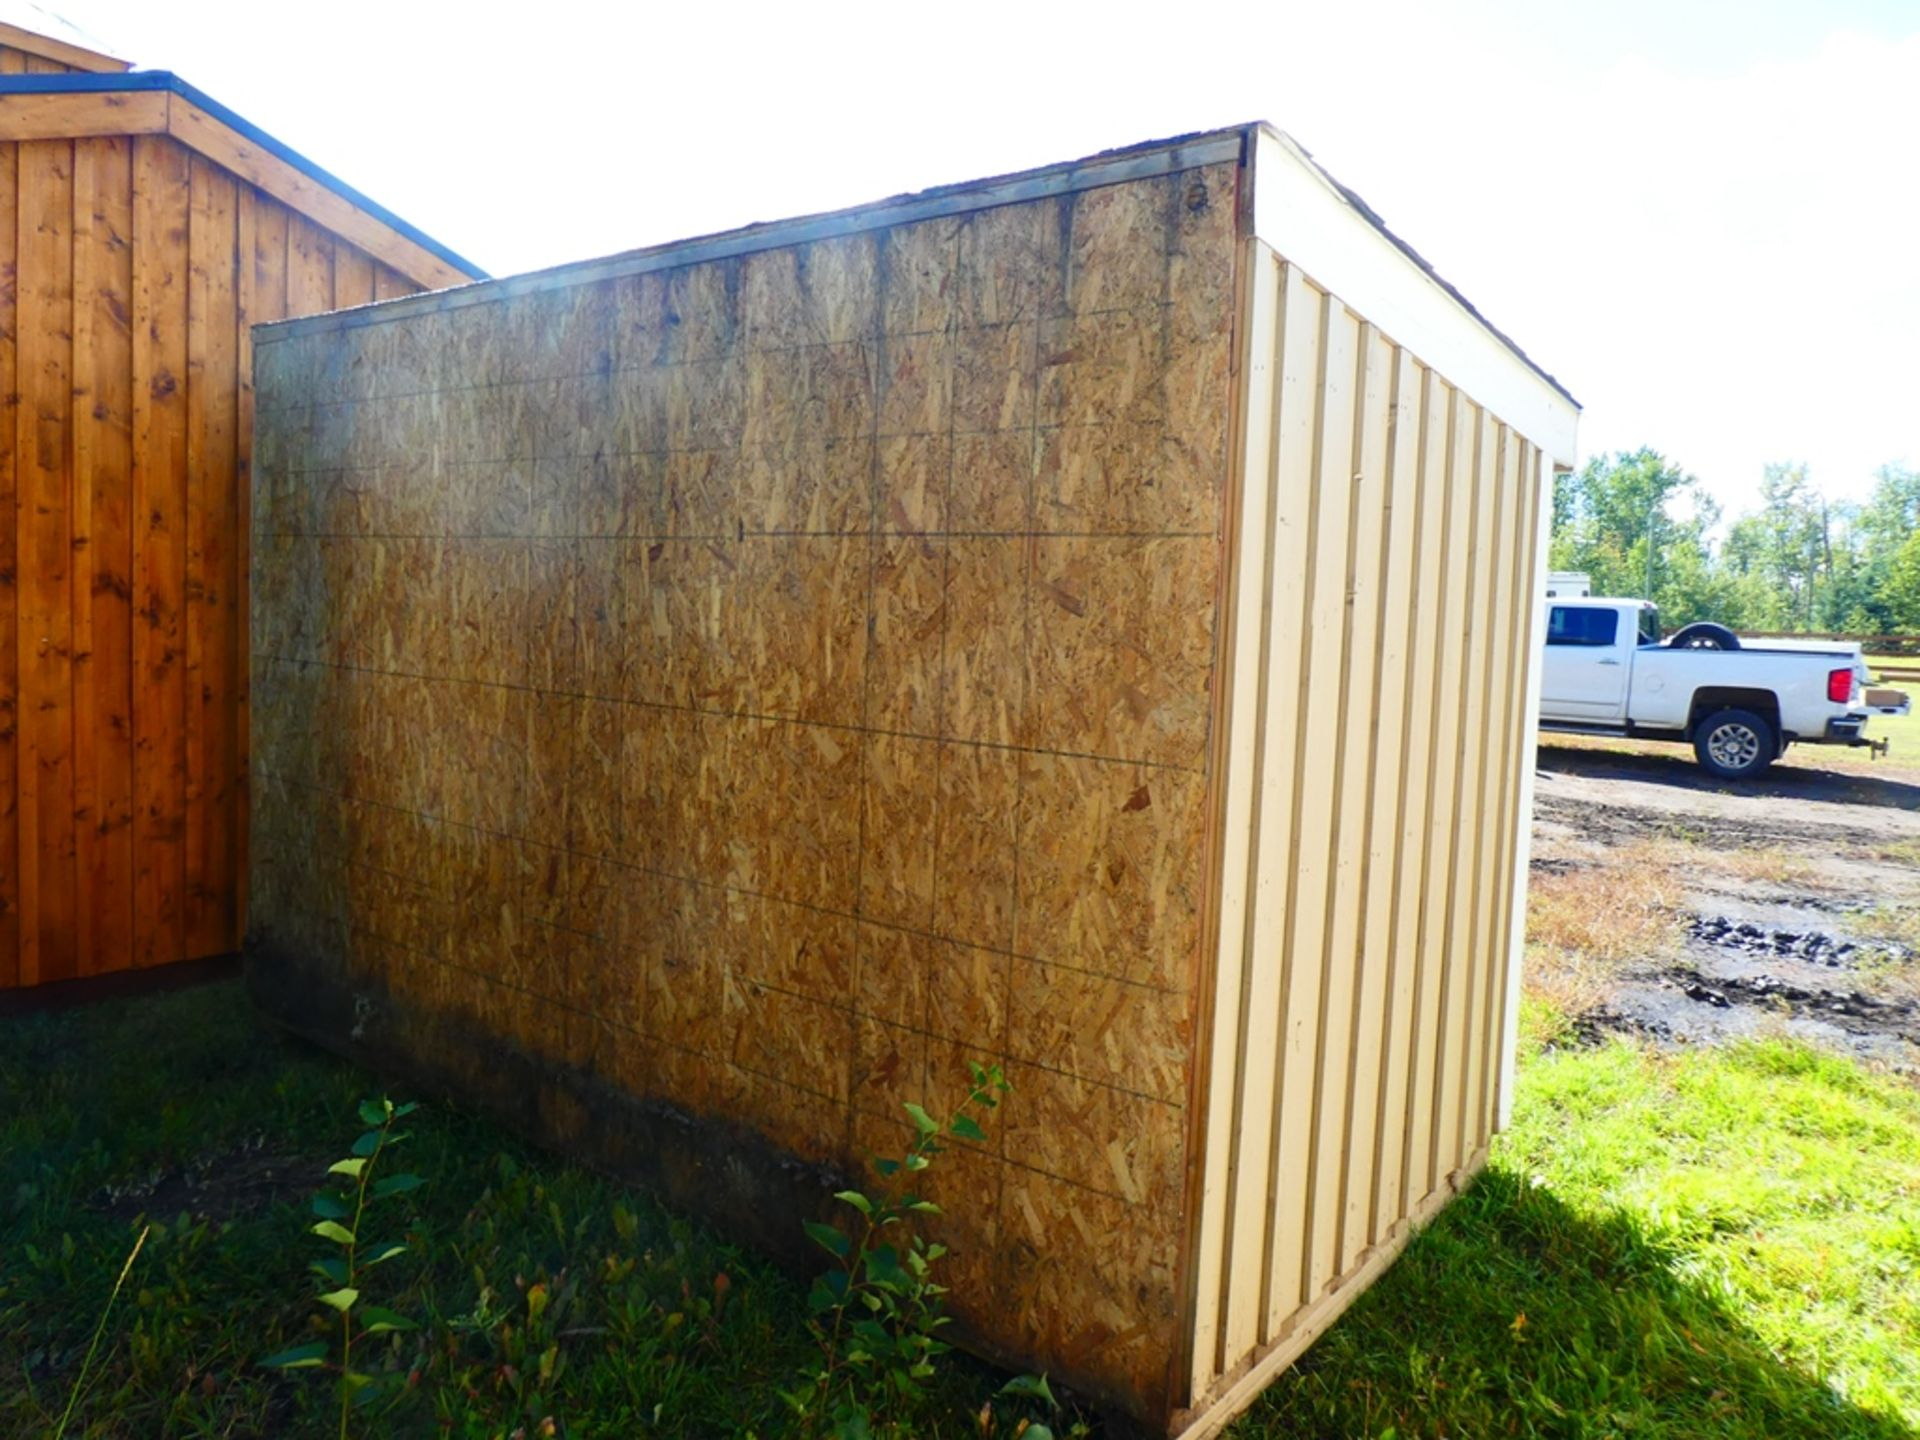 HAND CRAFTED 2 COMPARTMENT STORAGE BUILDING 6'X12' - Image 2 of 4